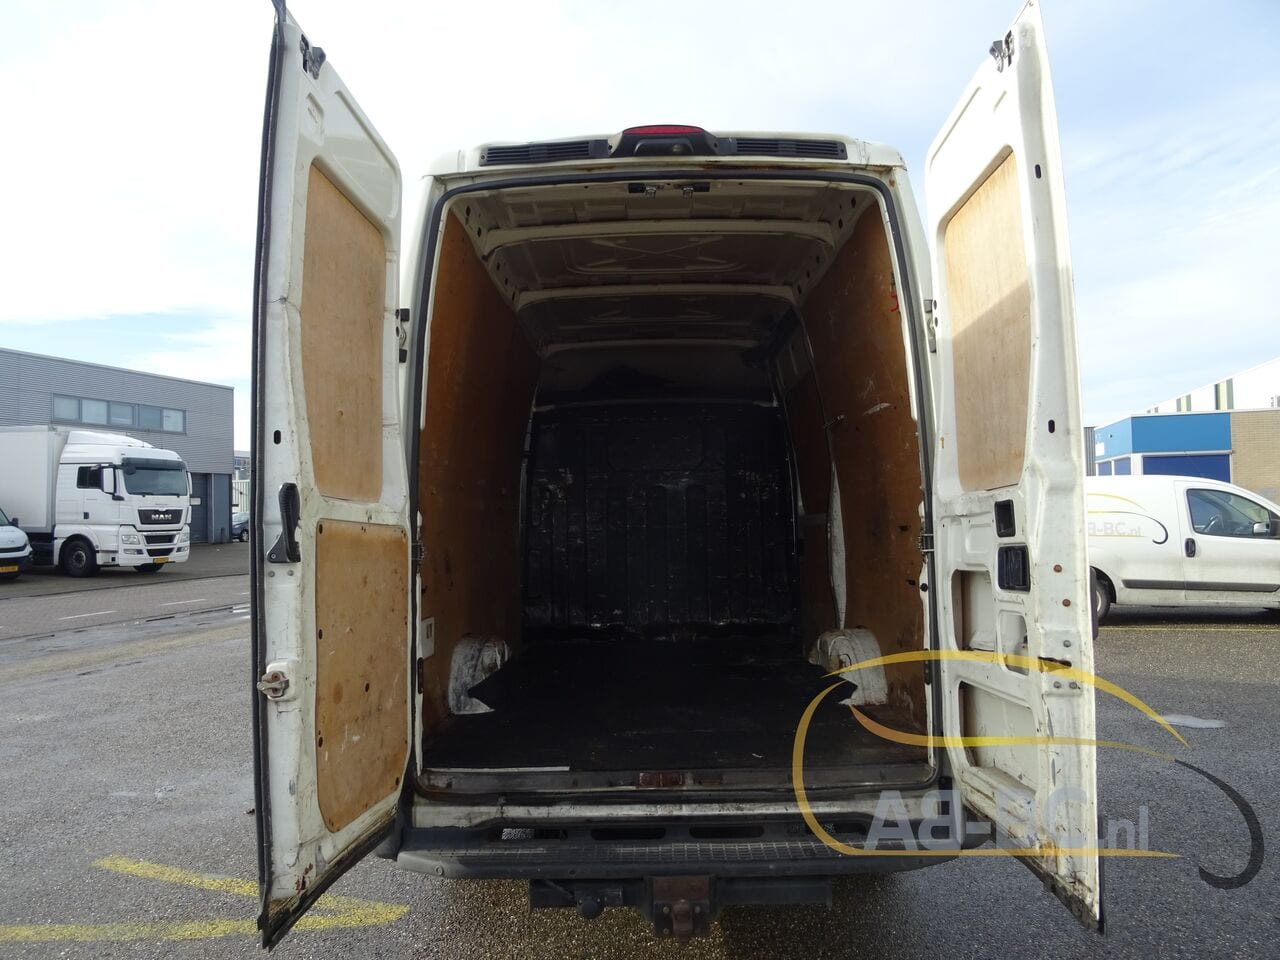 commercial-vehicle-closed-box-vanIVECO-Daily-35S18V-Automaat-180-PK---1613469840034328346_big--21021612014011202200